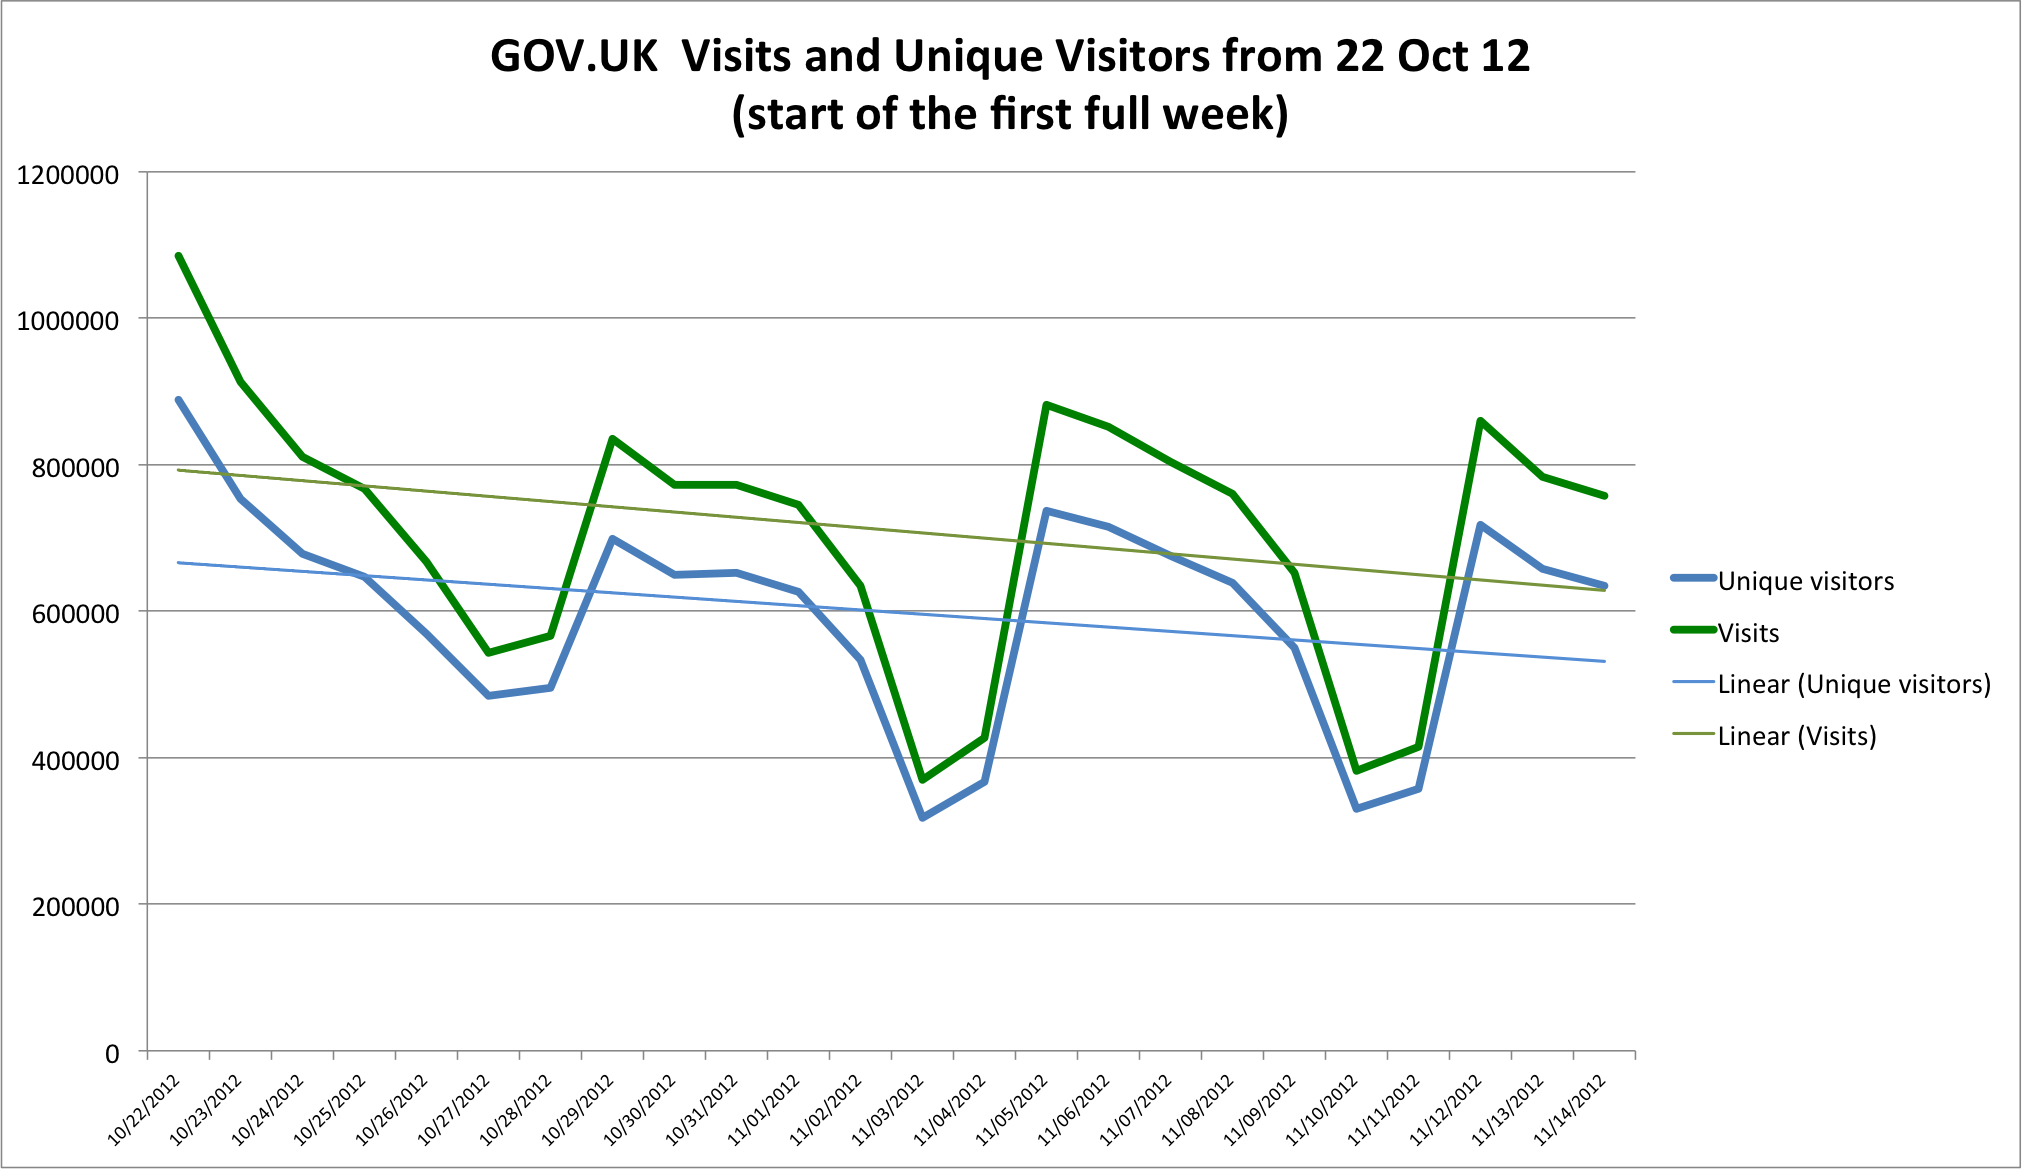 GOVUK visits and unique visitors from 12 October 2012 (start of the first full week)